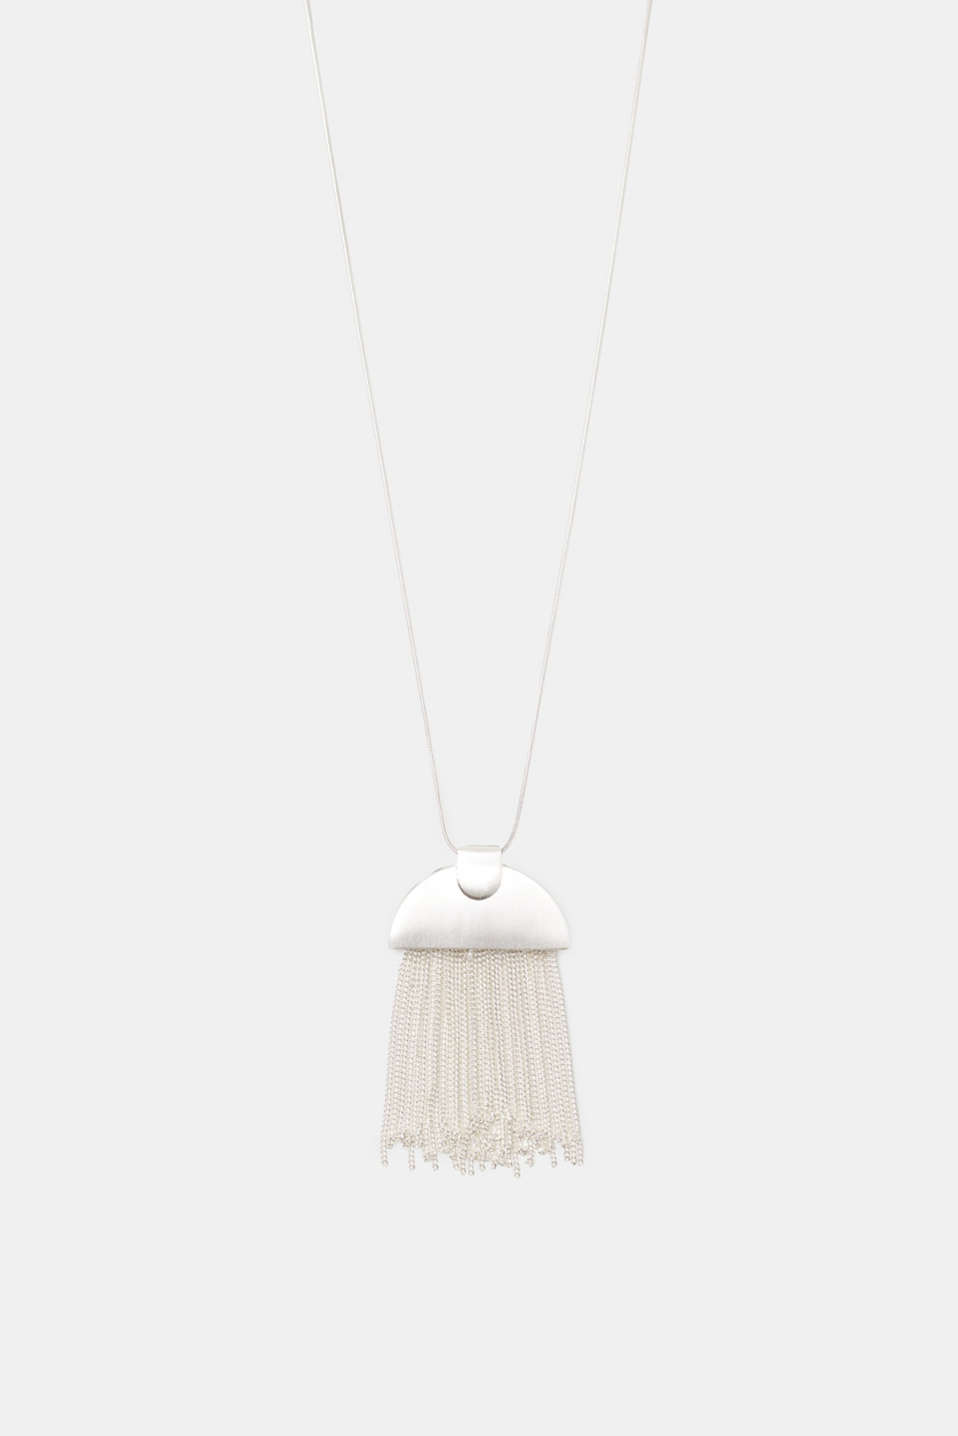 We love minimalist designs! The semicircular pendant with metal fringing is the eye-catching element of this necklace.